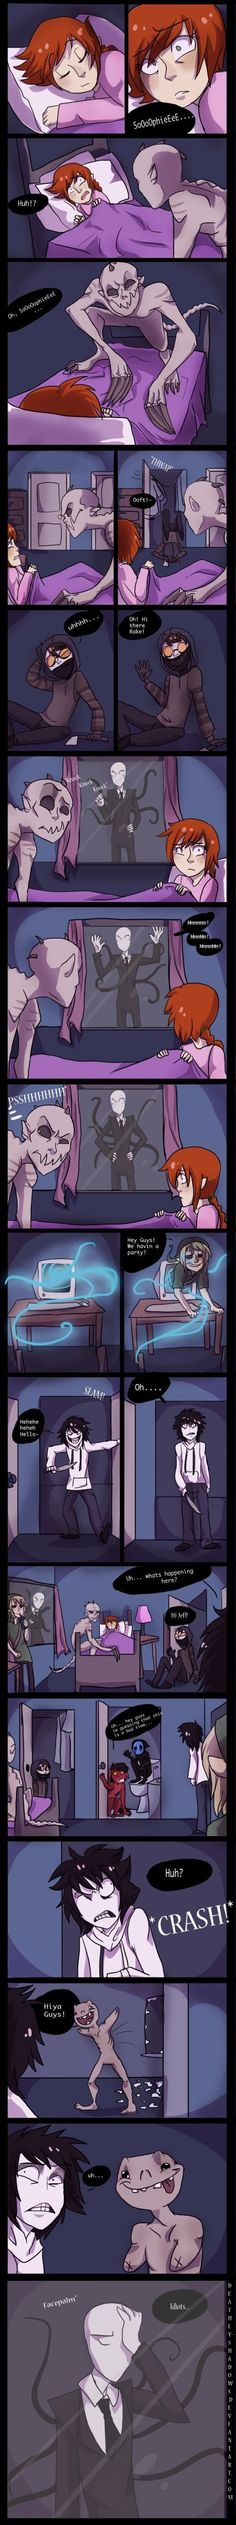 /Creepypasta/ - Zerochan I would probably be Jeff or Slenderman Anime Meme, Funny Memes, Hilarious, Jeff The Killer, Creepy Pasta, Scary Stories, Funny Comics, Fnaf, Comic Strips